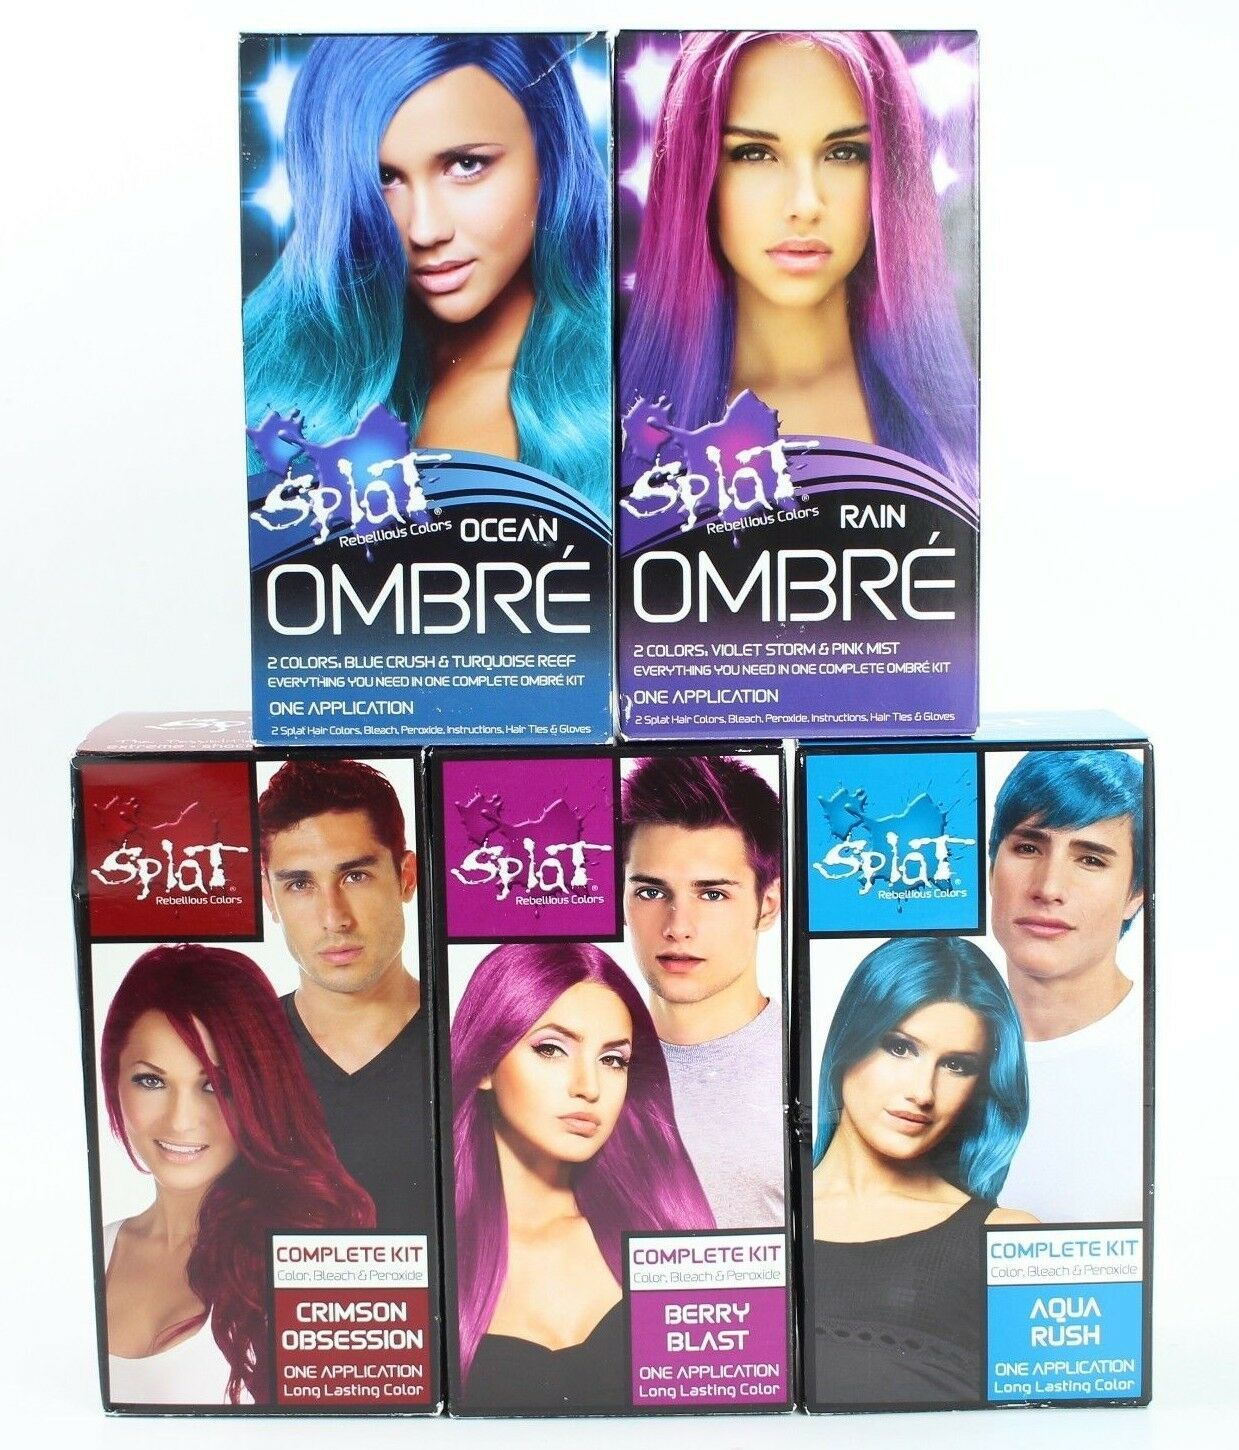 X5 Splat Rebellious Colors Hair Dye Coloring Complete Kit Ombre Lasting Lot Of 5 In 2020 Hair Dye Colors Dyed Hair Hair Color